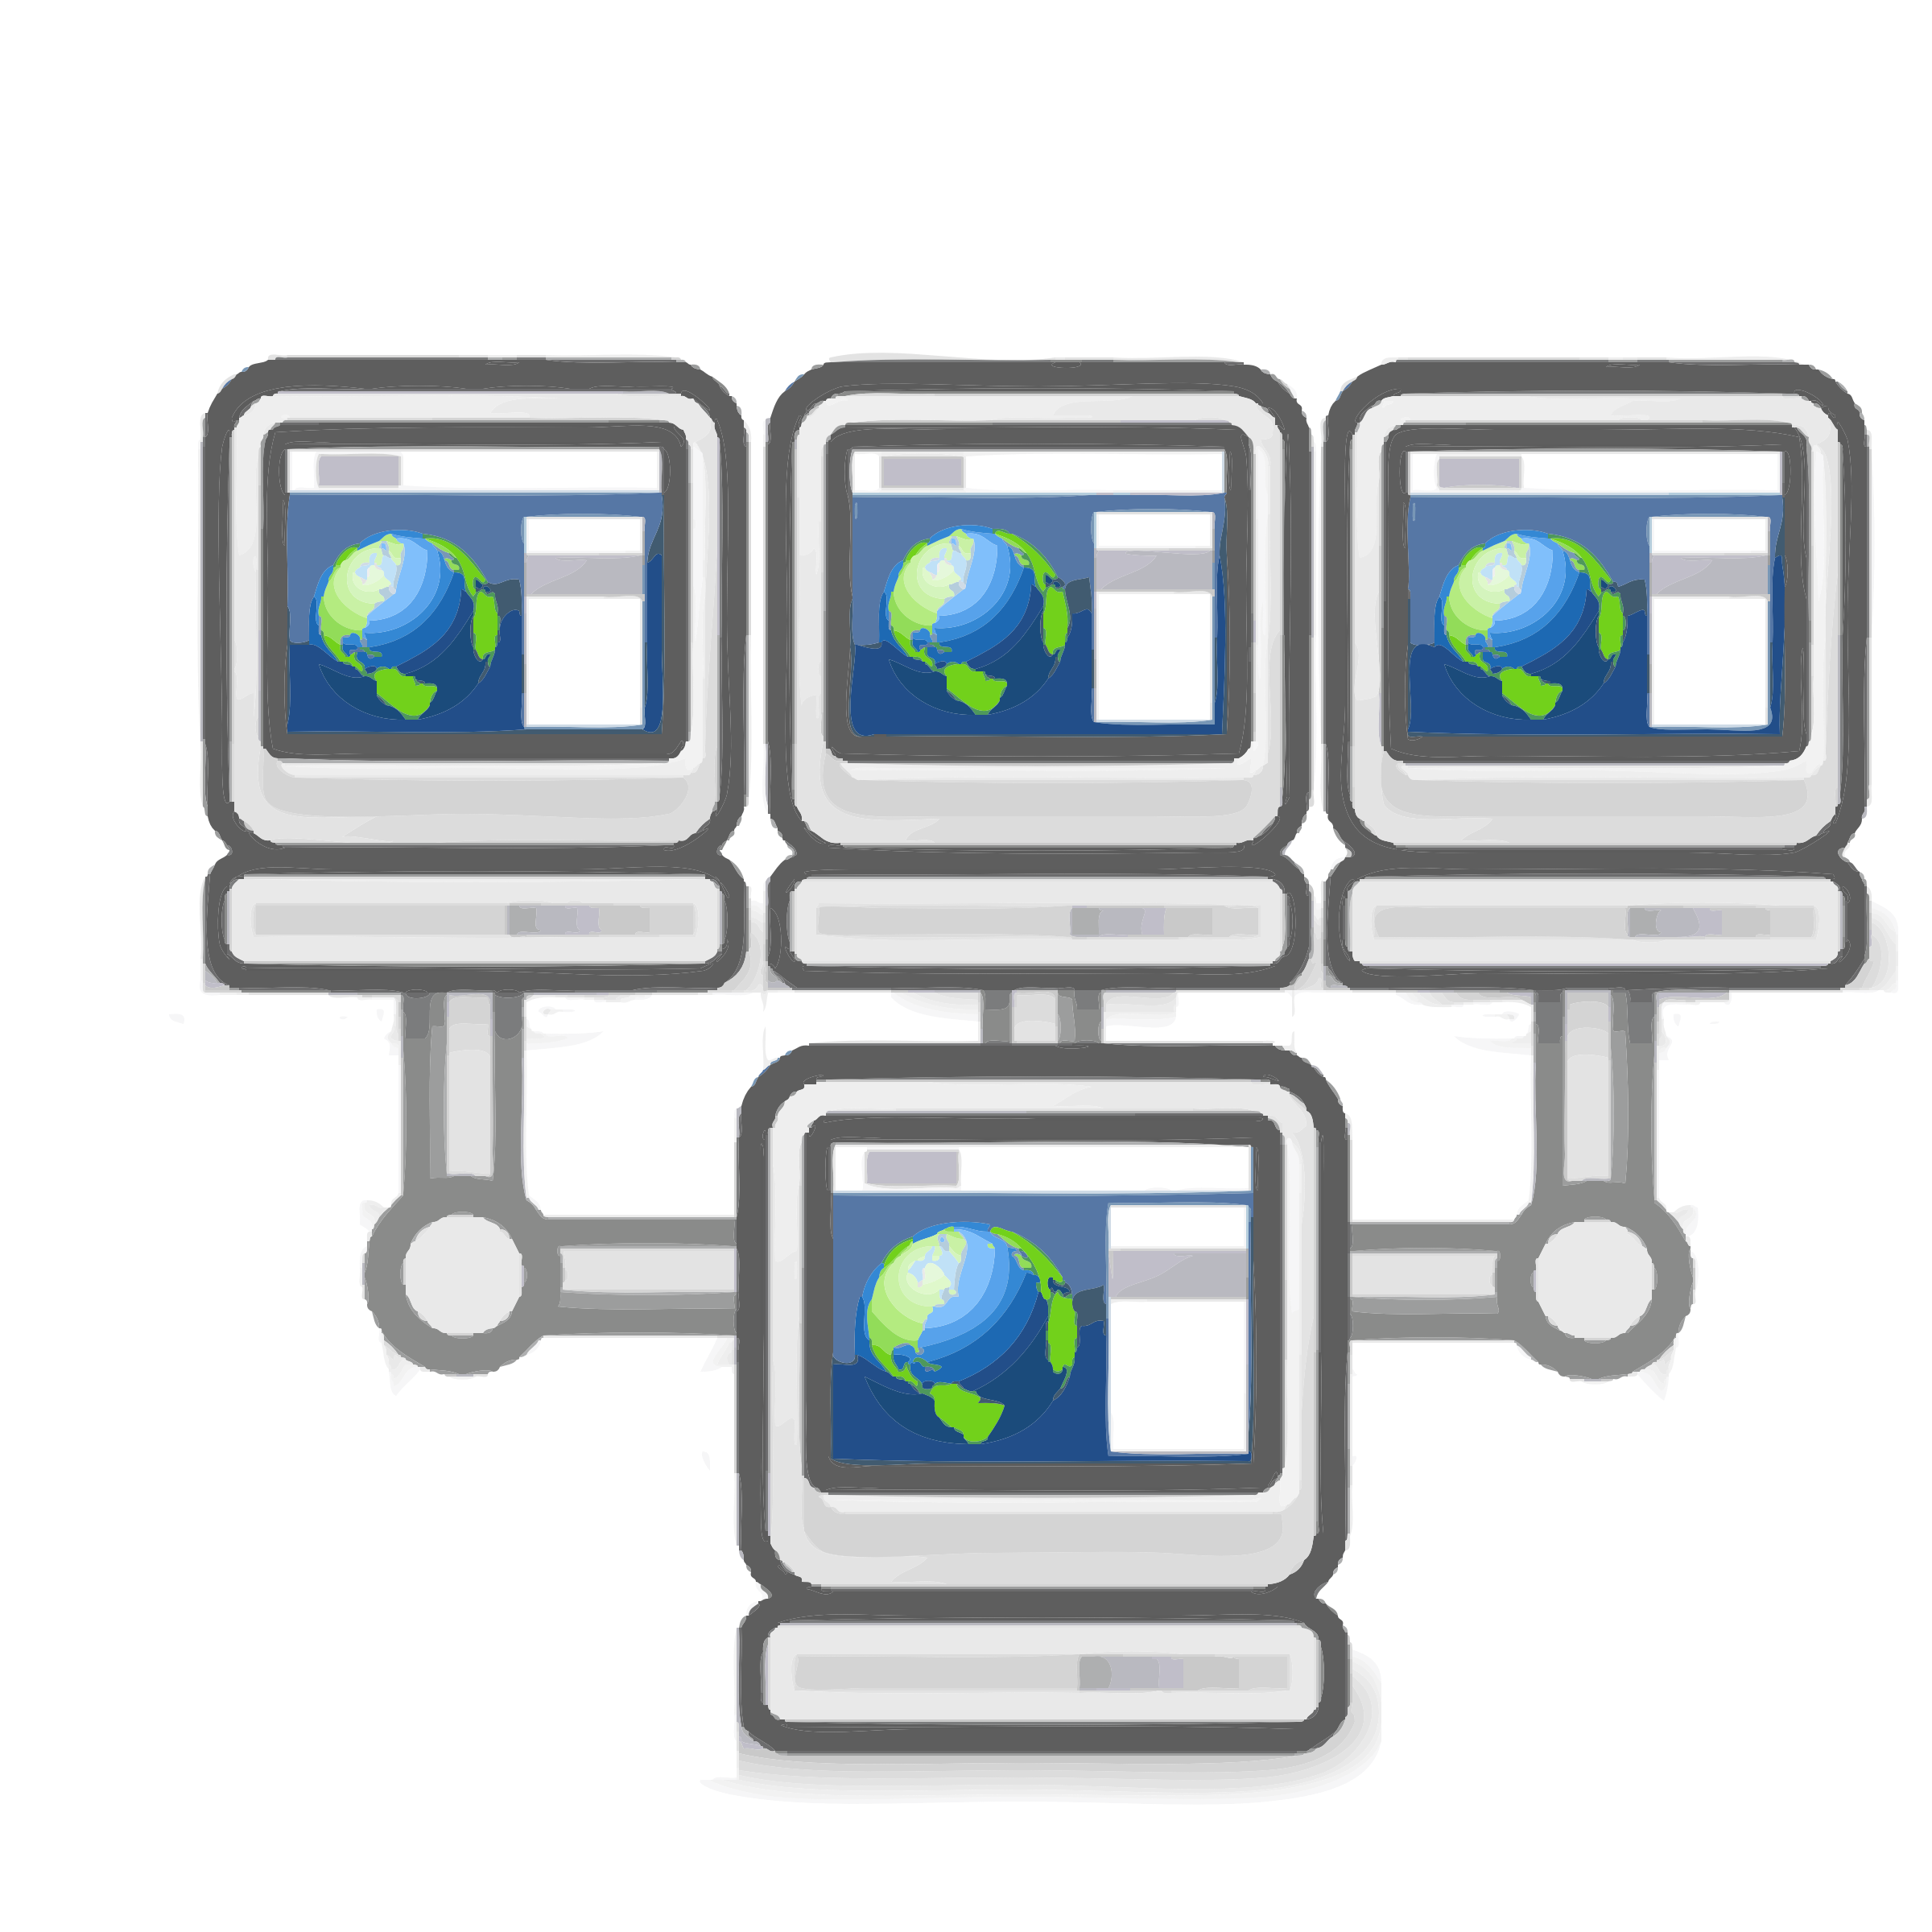 Internet by liontooth34